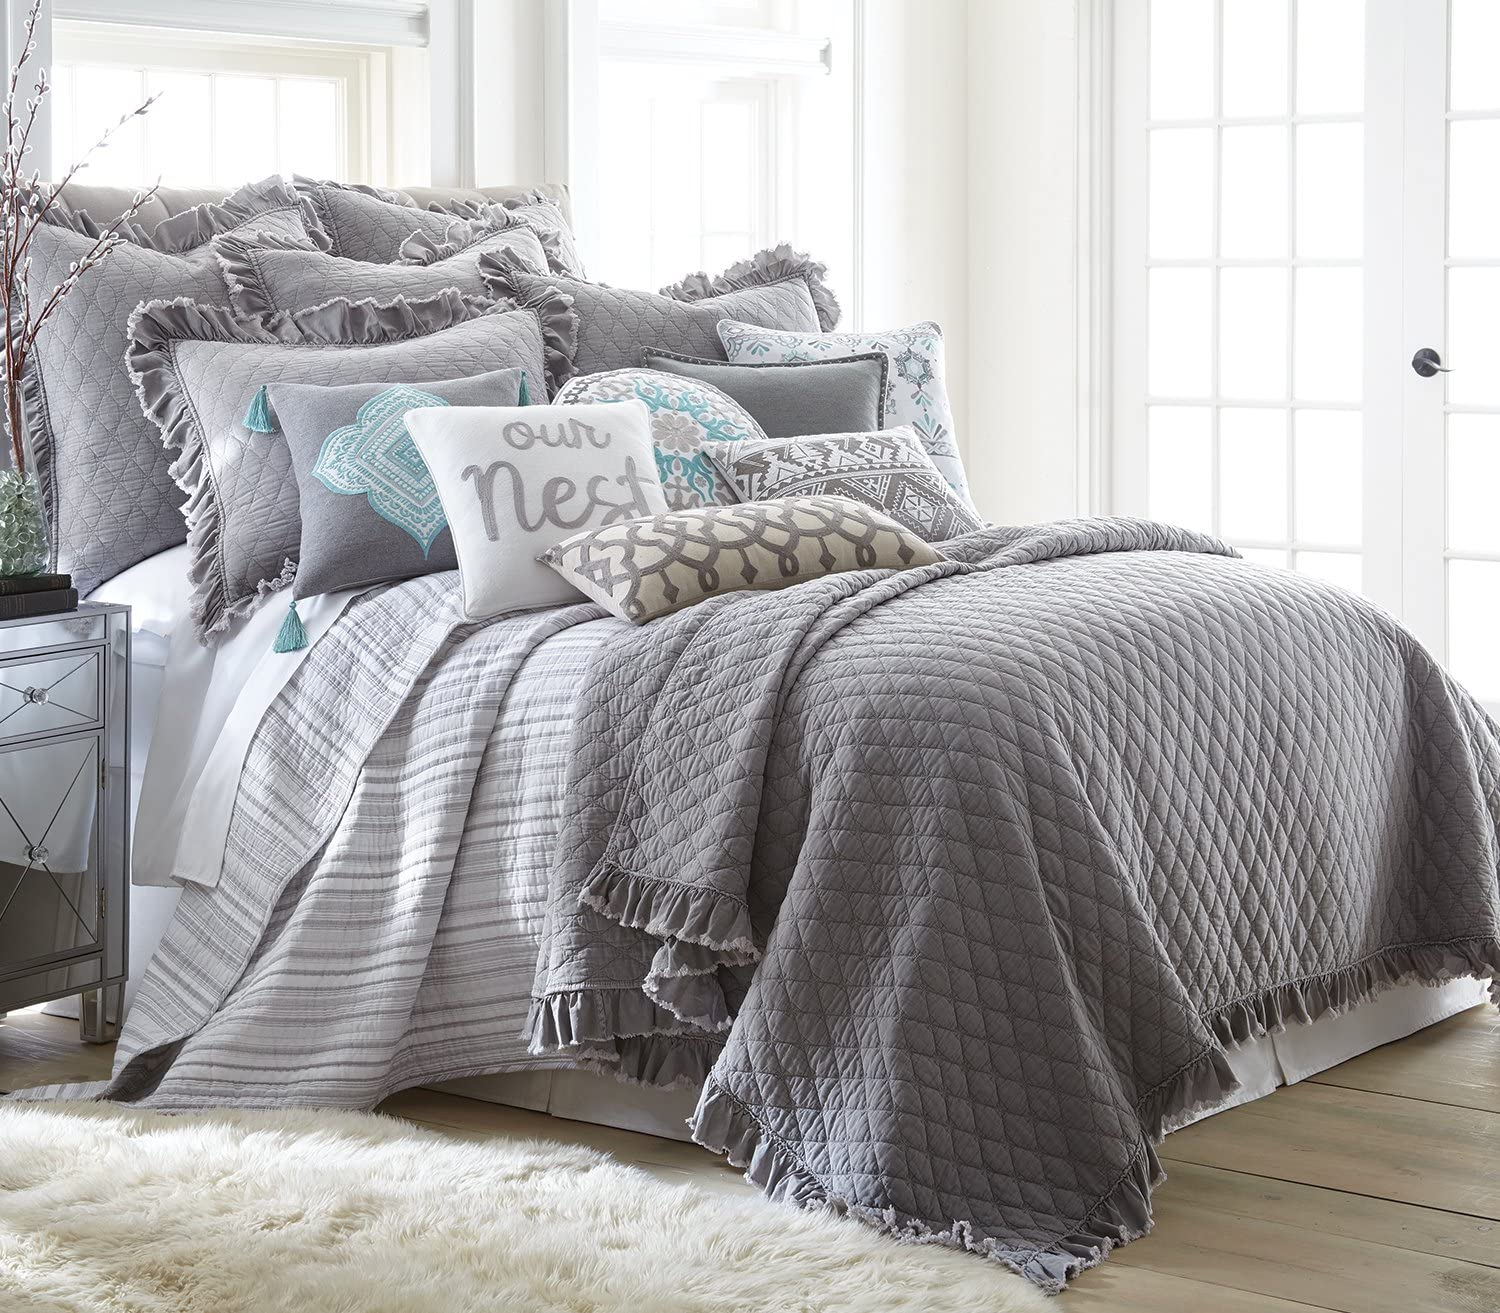 Levtex Grey Stonewashed King Quilt Set, Grey, Solid